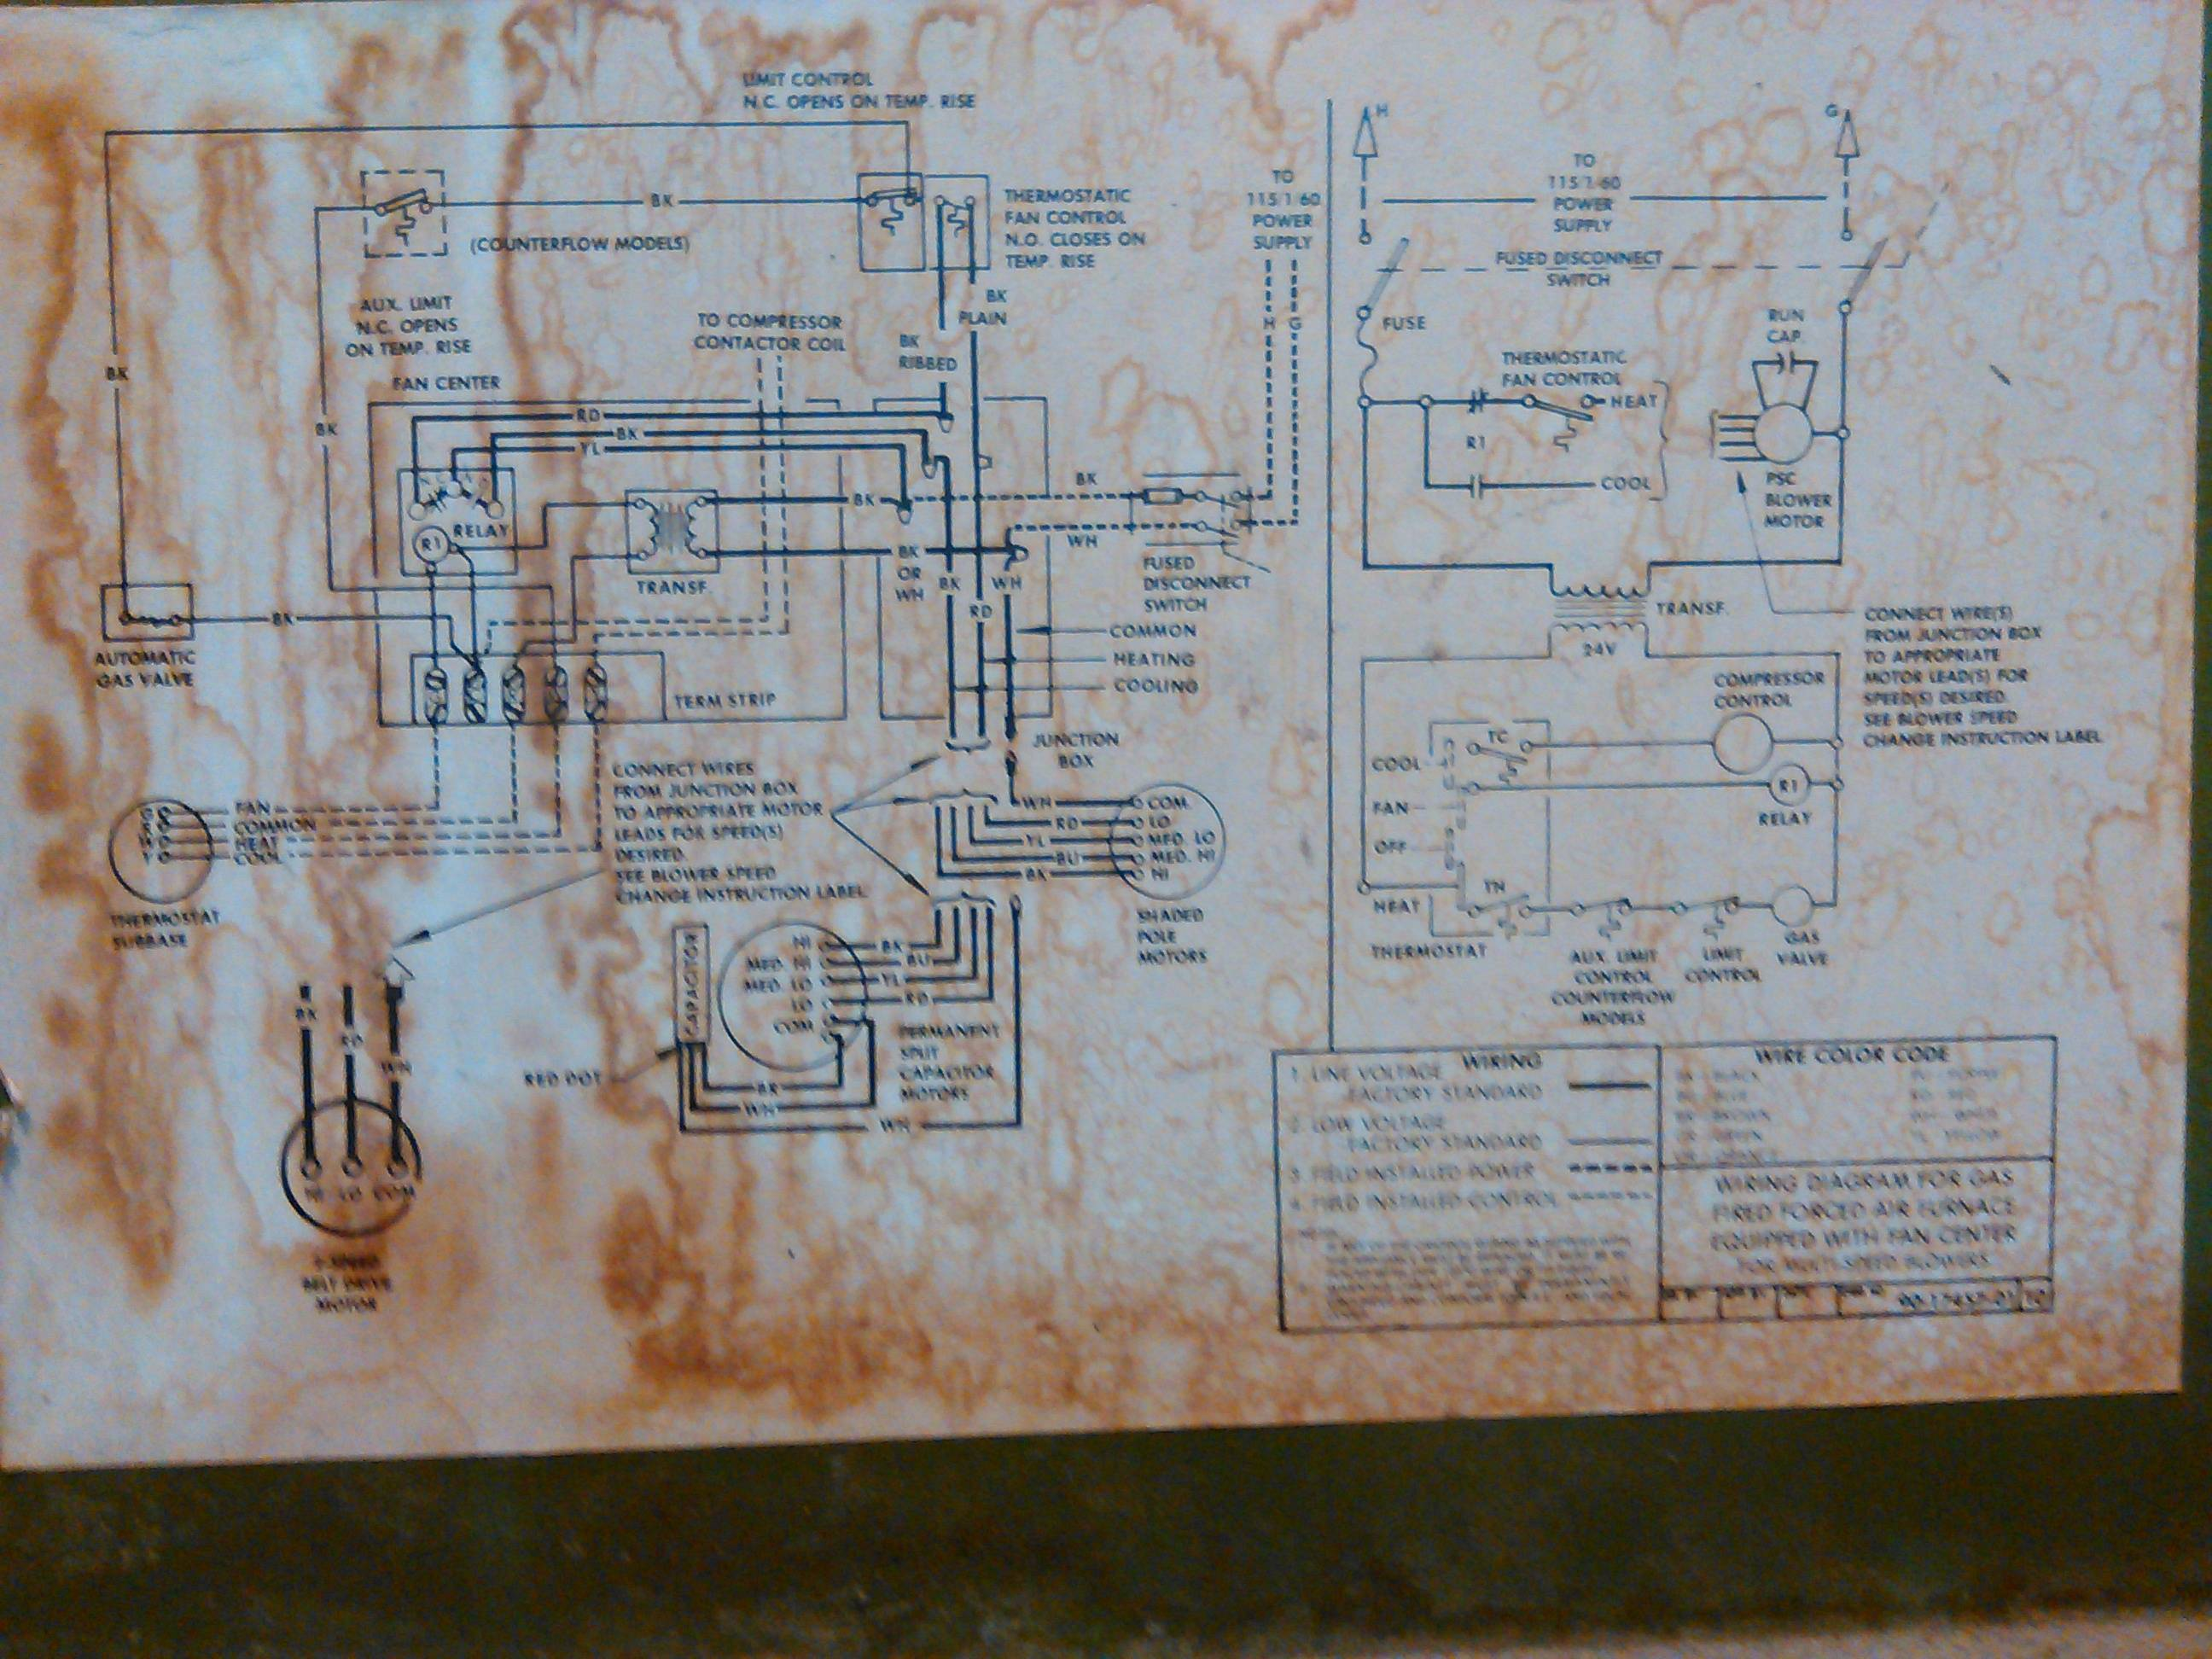 mobile home wiring diagrams class diagram visio template hvac replace old furnace blower motor with a new one but the wires enter image description here